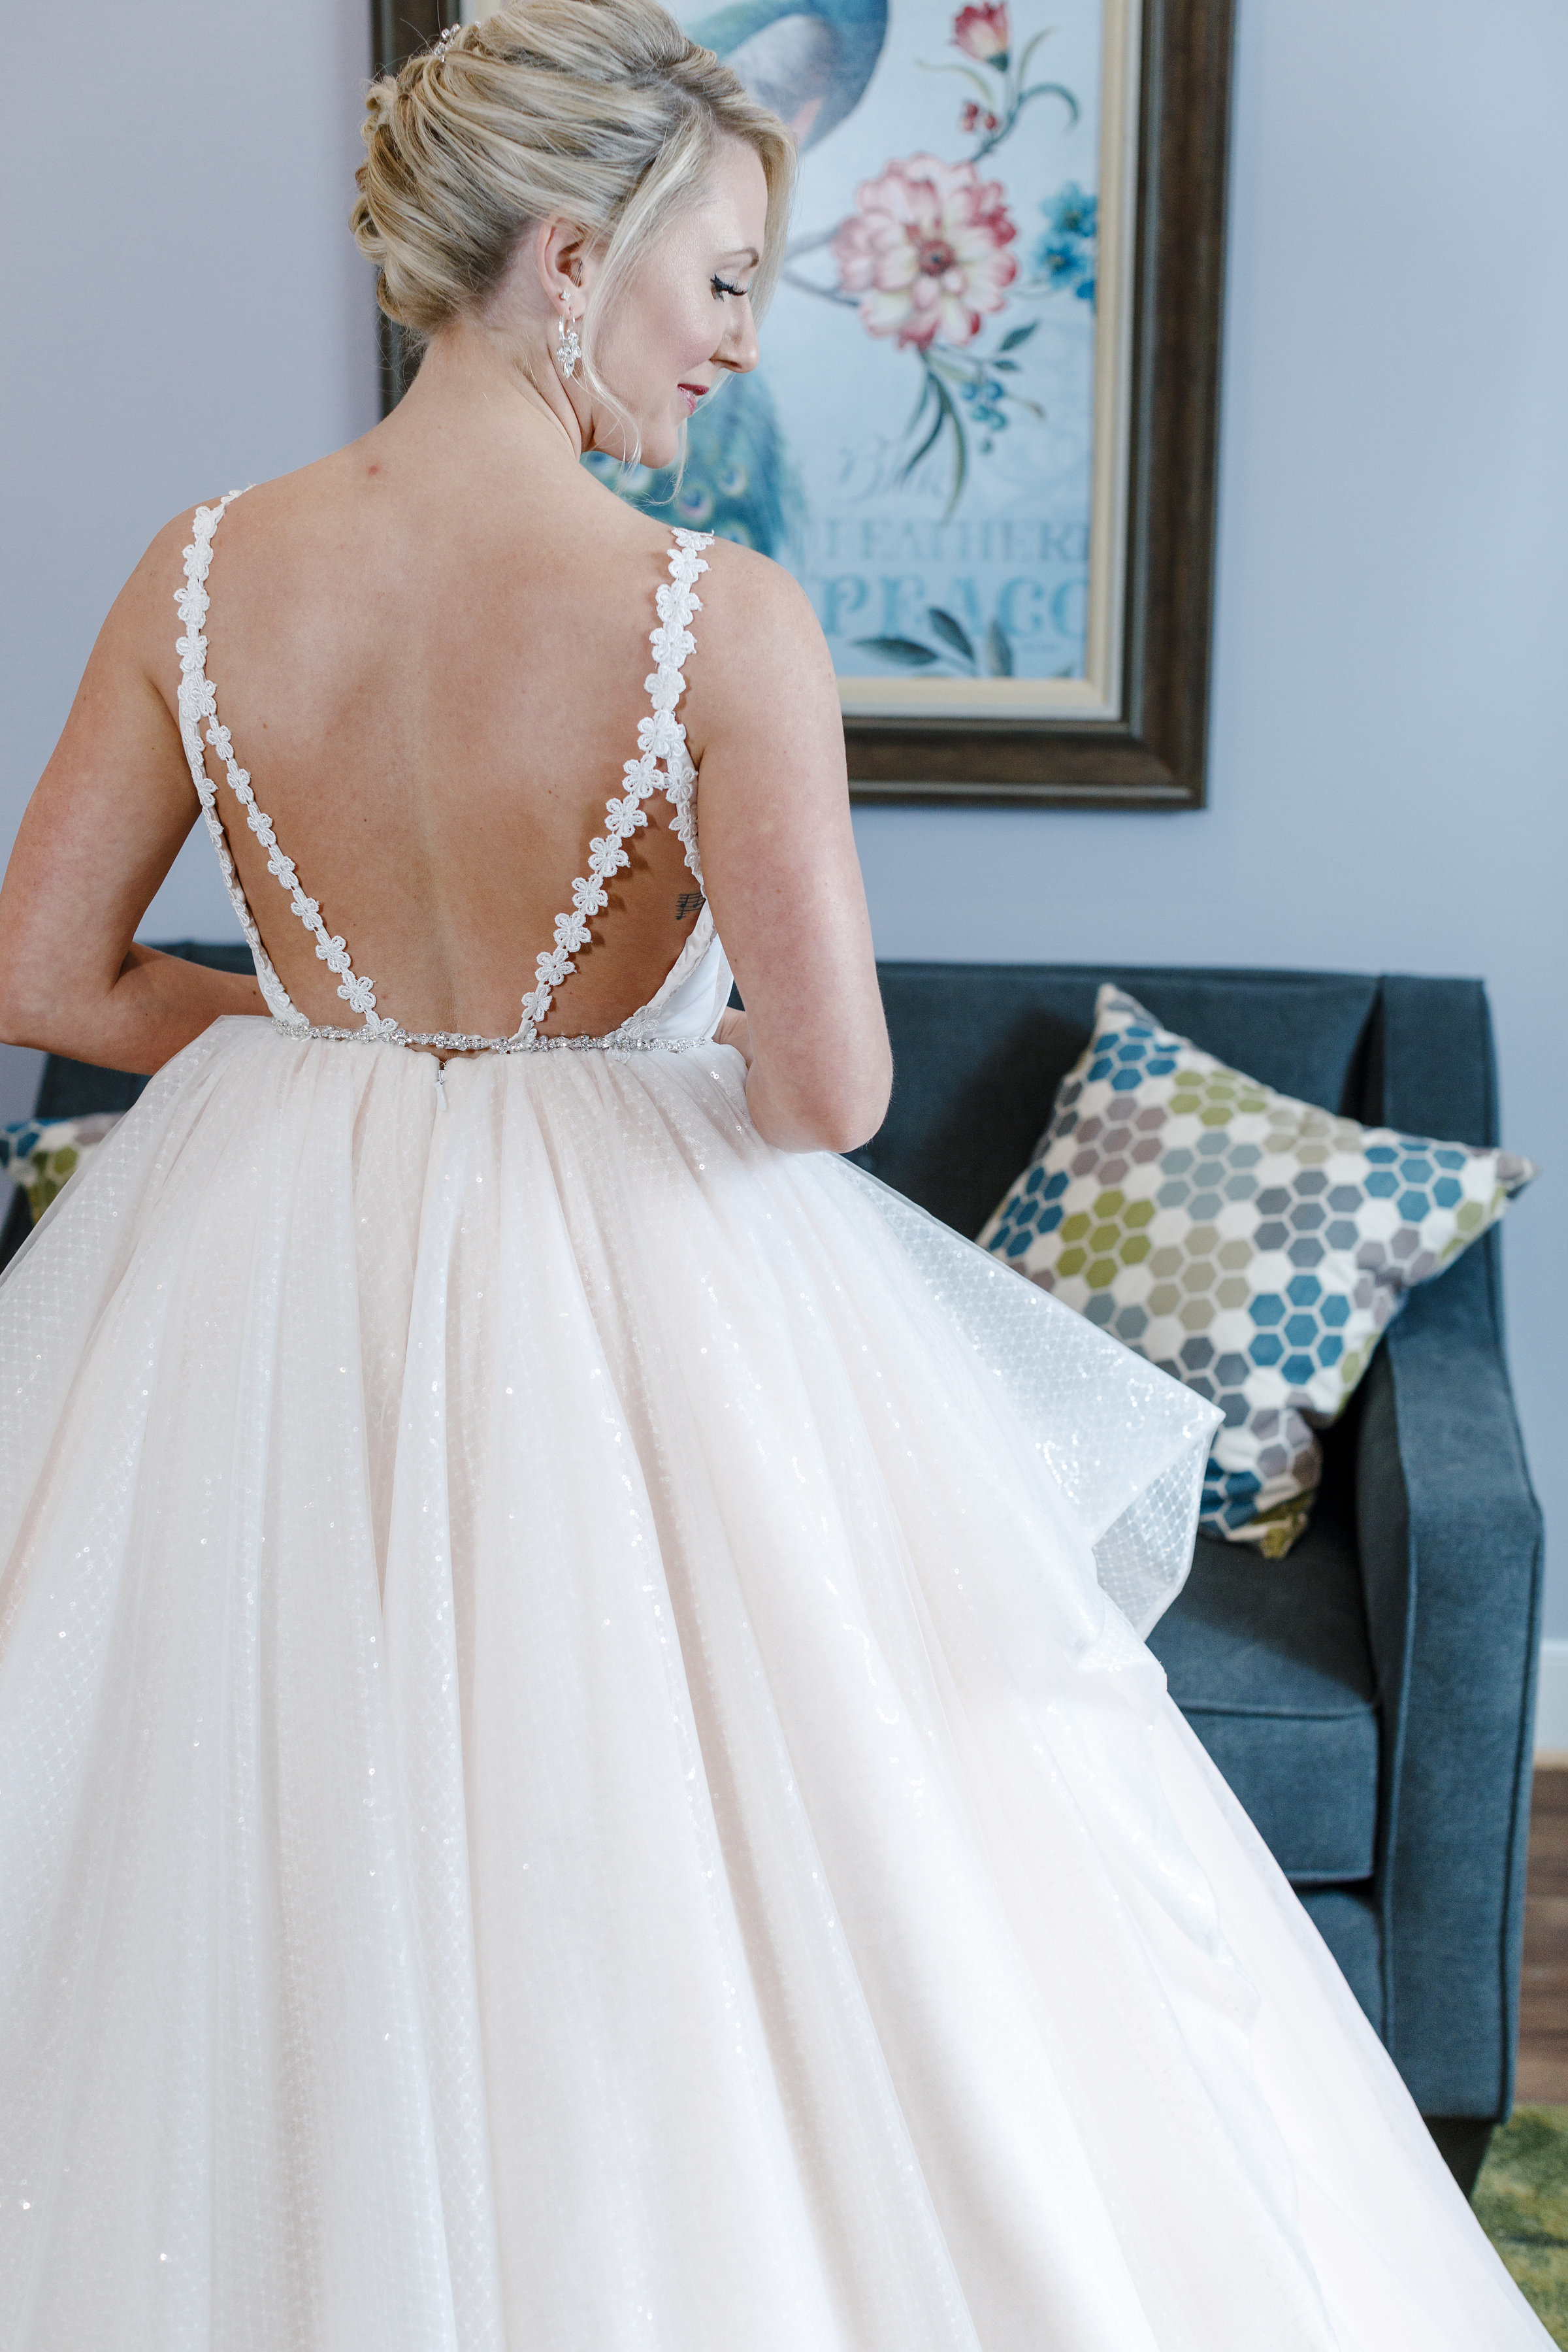 Sabrina finally reached out to Anomalie for help designing a custom gown.